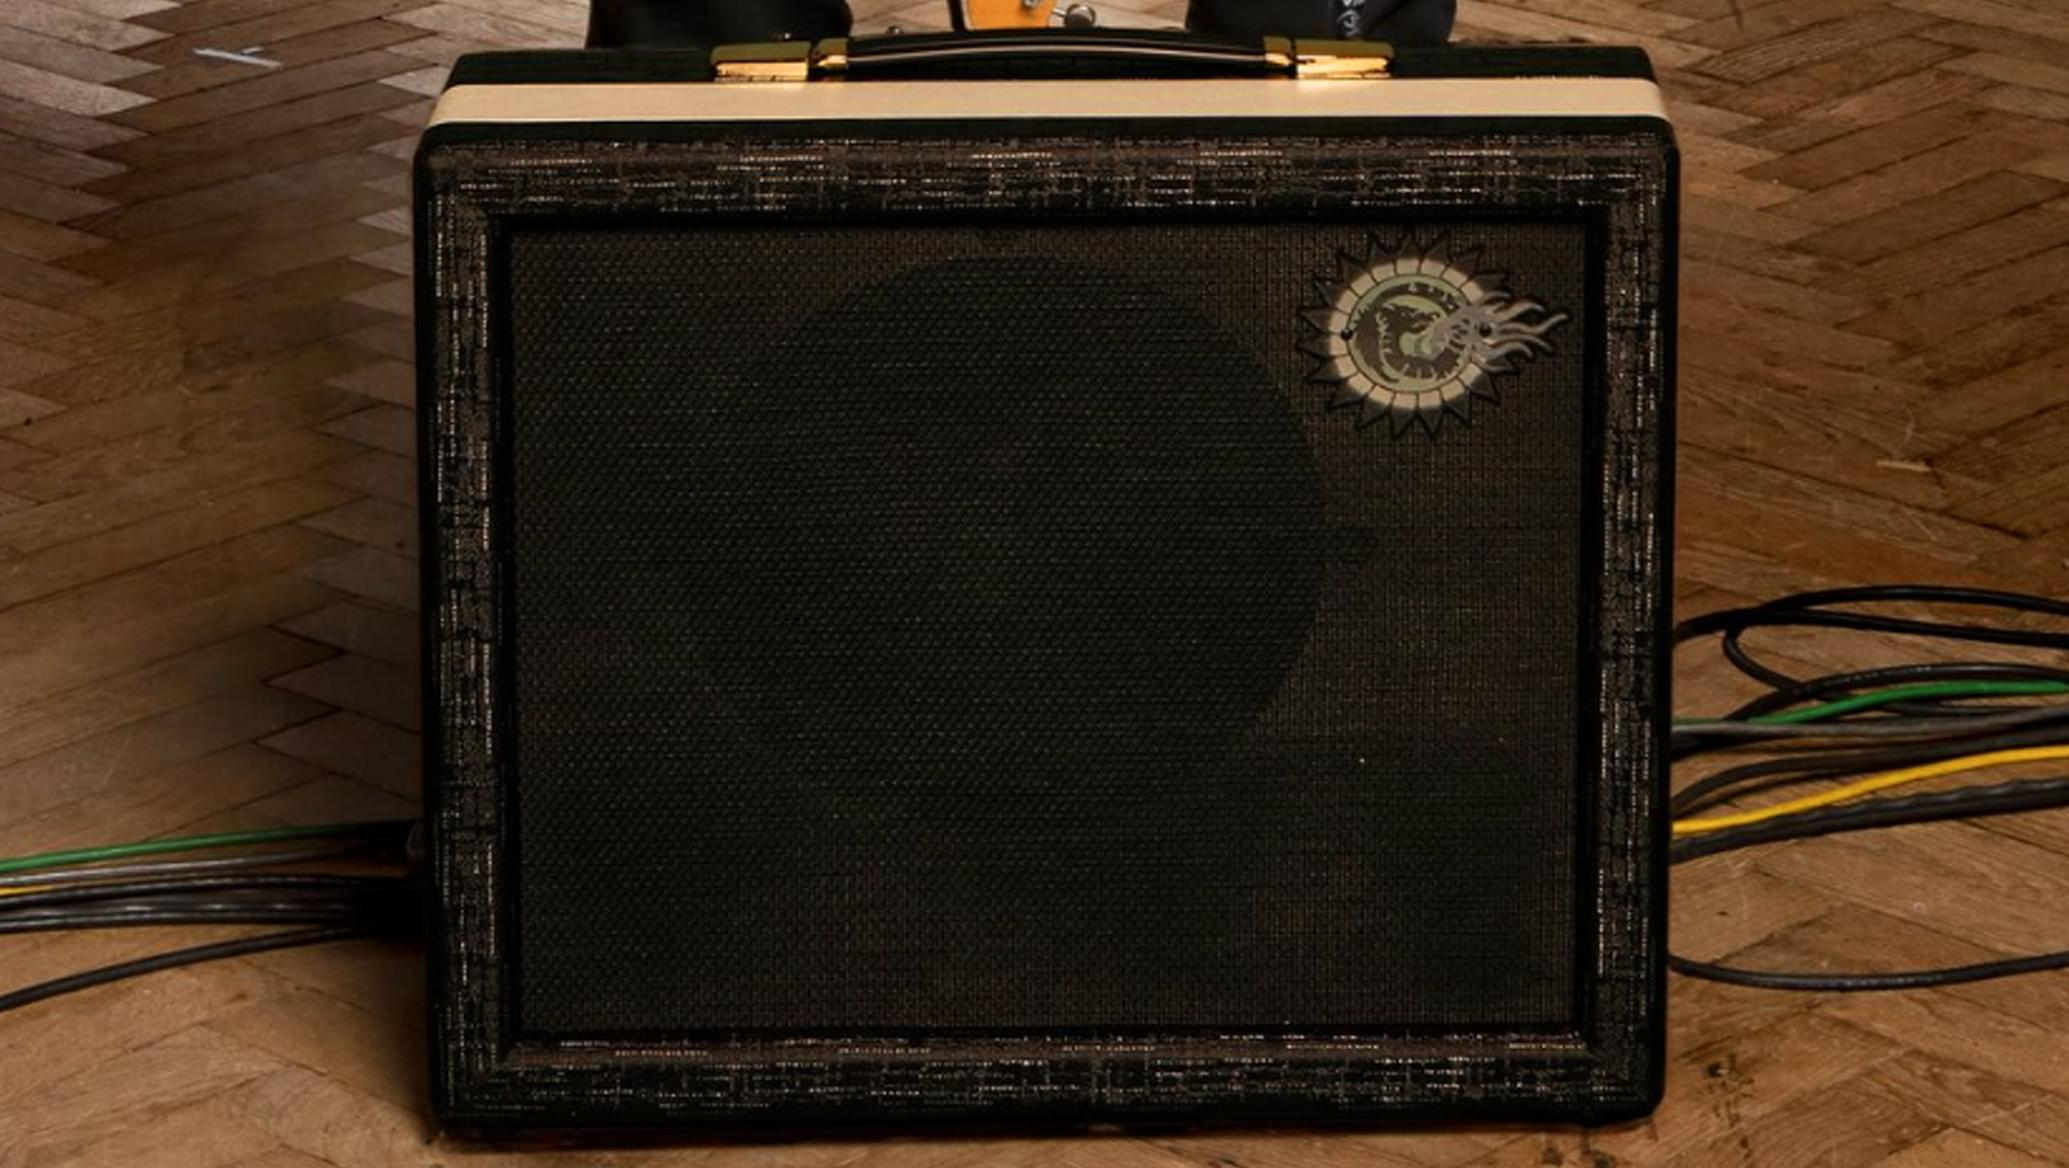 Jimmy Page issuing reproduction of classic early Led Zeppelin Amp